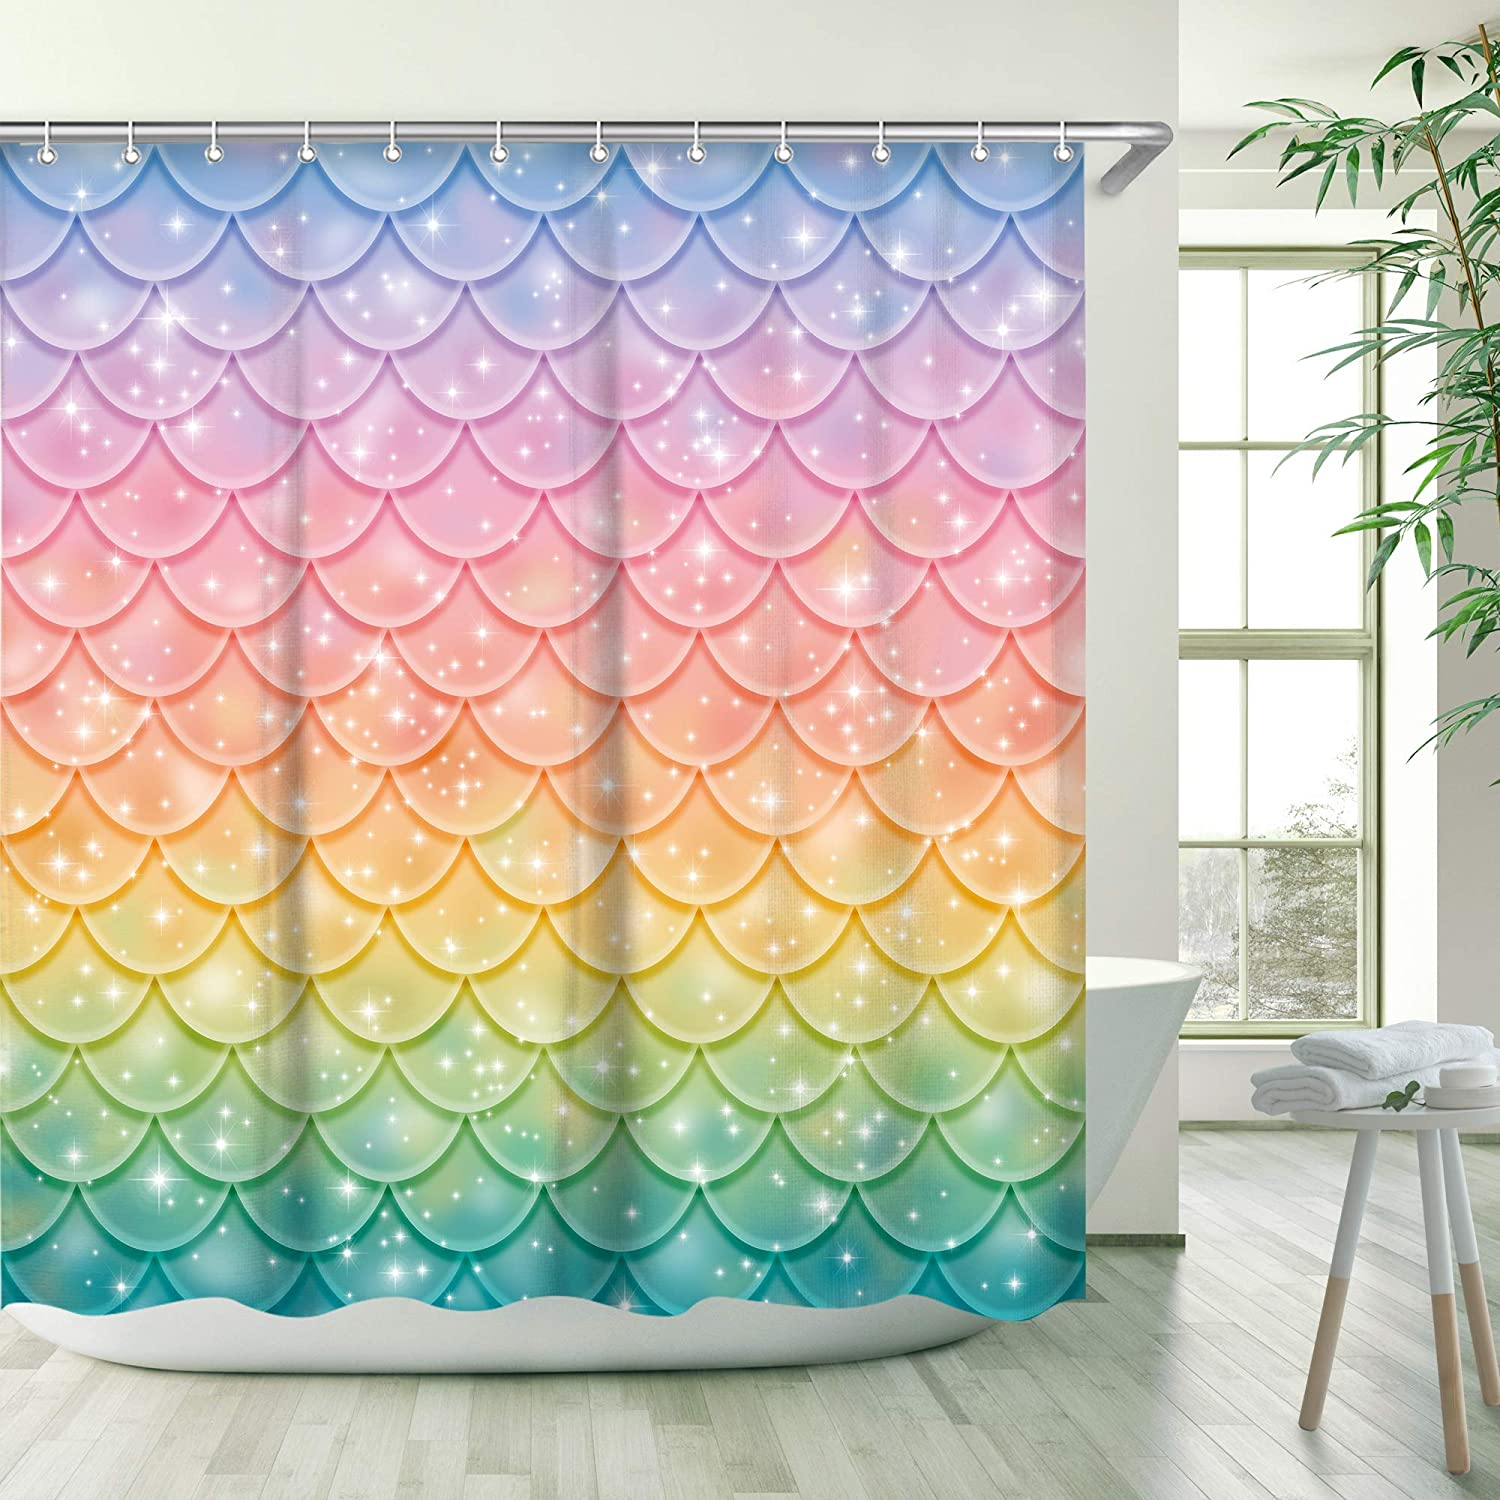 RosieLily Mermaid Shower Curtain for Bathroom Pink Blue Lilac Fish Scale Ocean Theme, 3D Colorful Mermaid Scale Shower Curtain Bathroom Decor with 12 Hooks 72 Inch